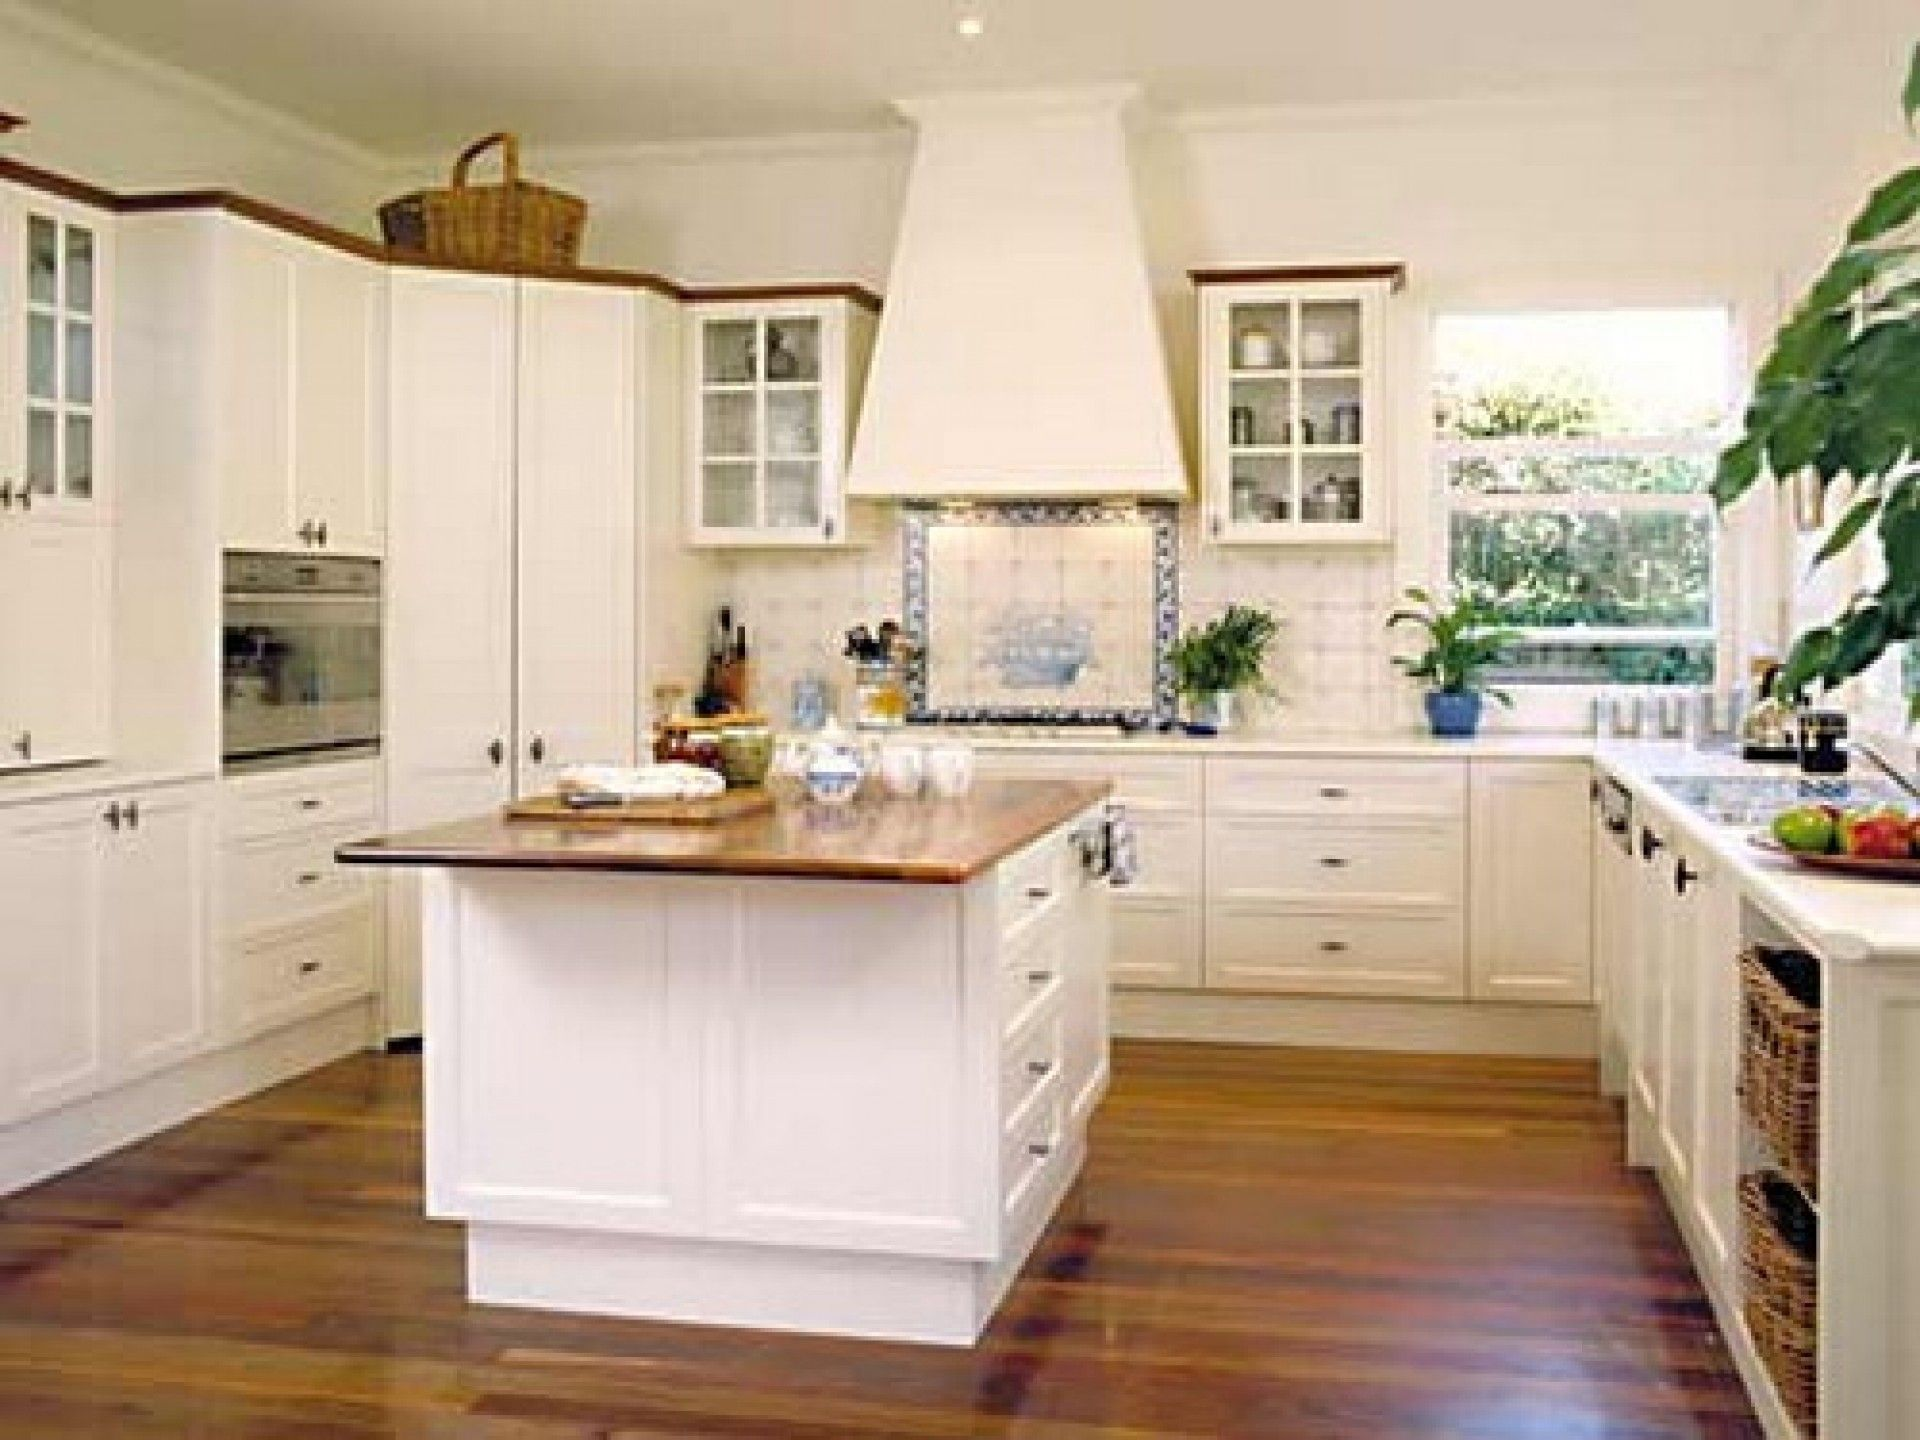 Stunning french provincial kitchen design ideas with for Kitchen design white